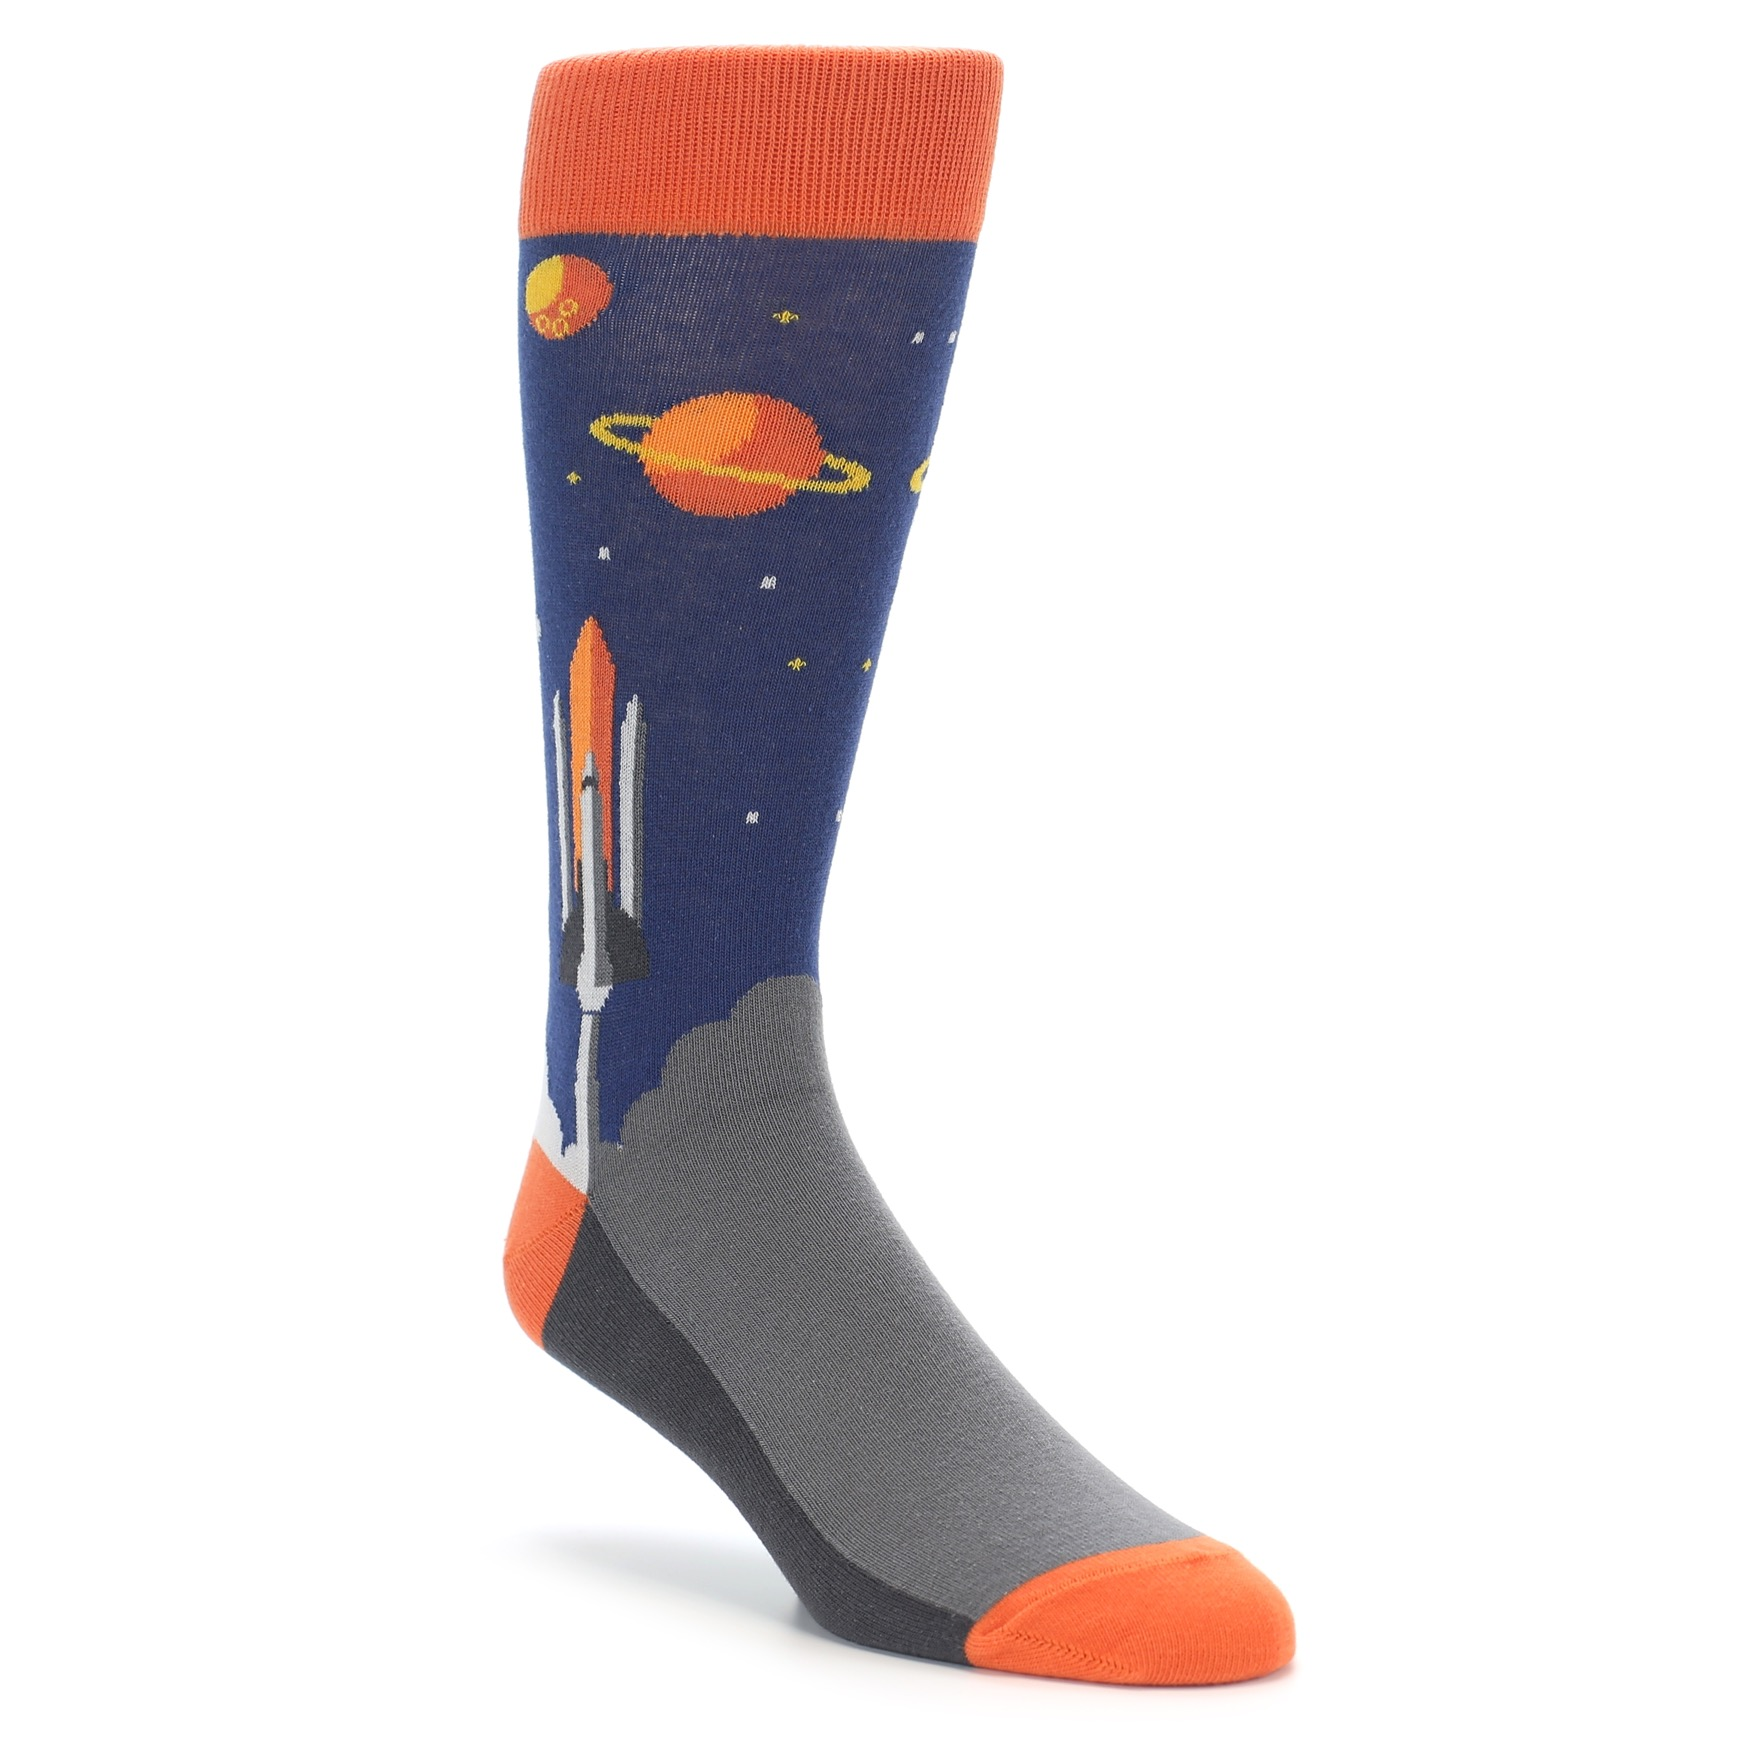 boldSOCKS – boldSOCKS offers uniquely colorful, patterned, fun ...